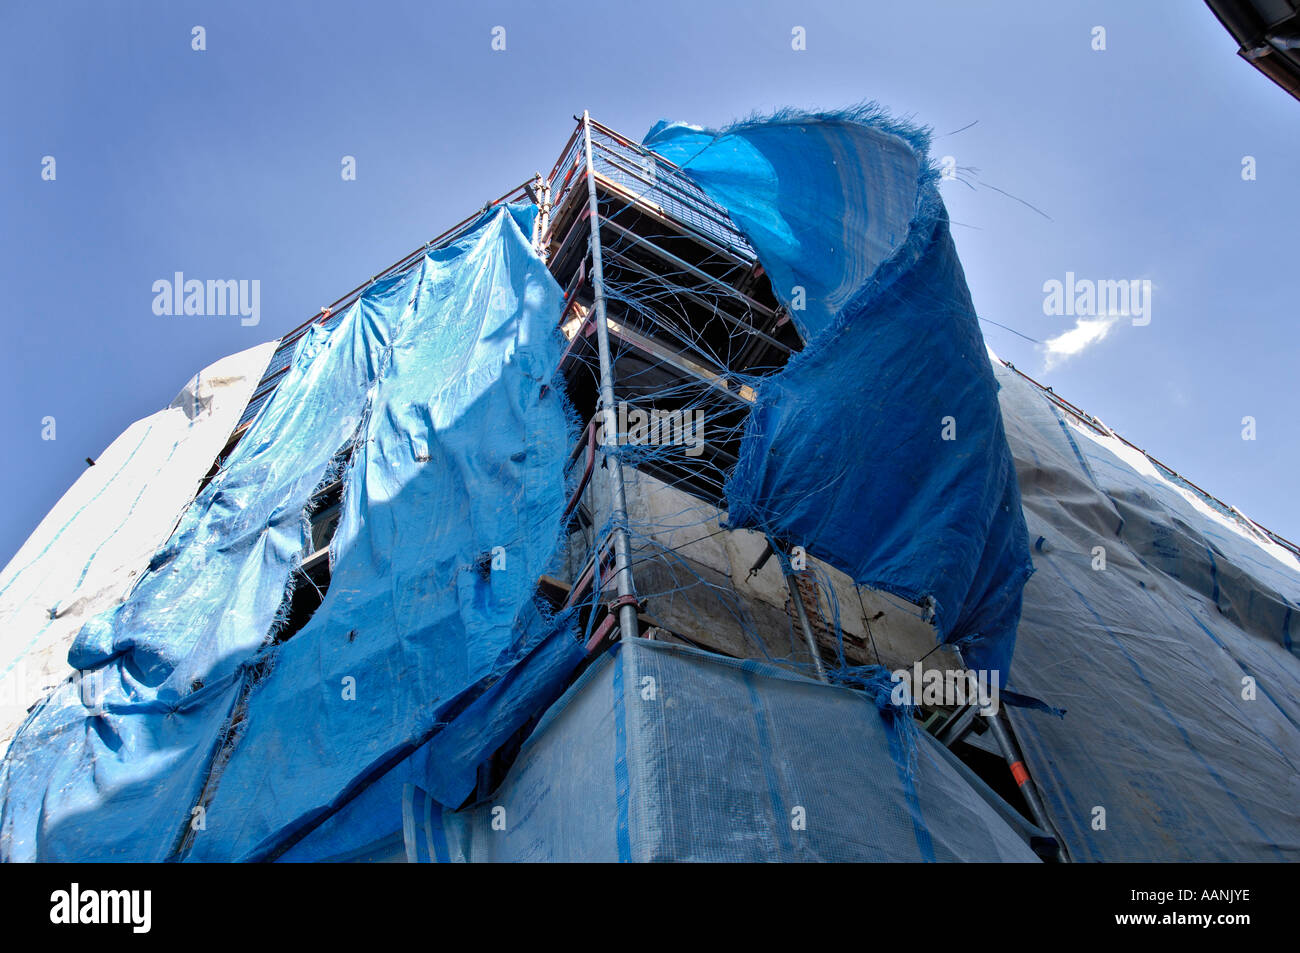 Scaffold with torn covers, Bamberg, Upper Franconia, Bavaria, Germany - Stock Image